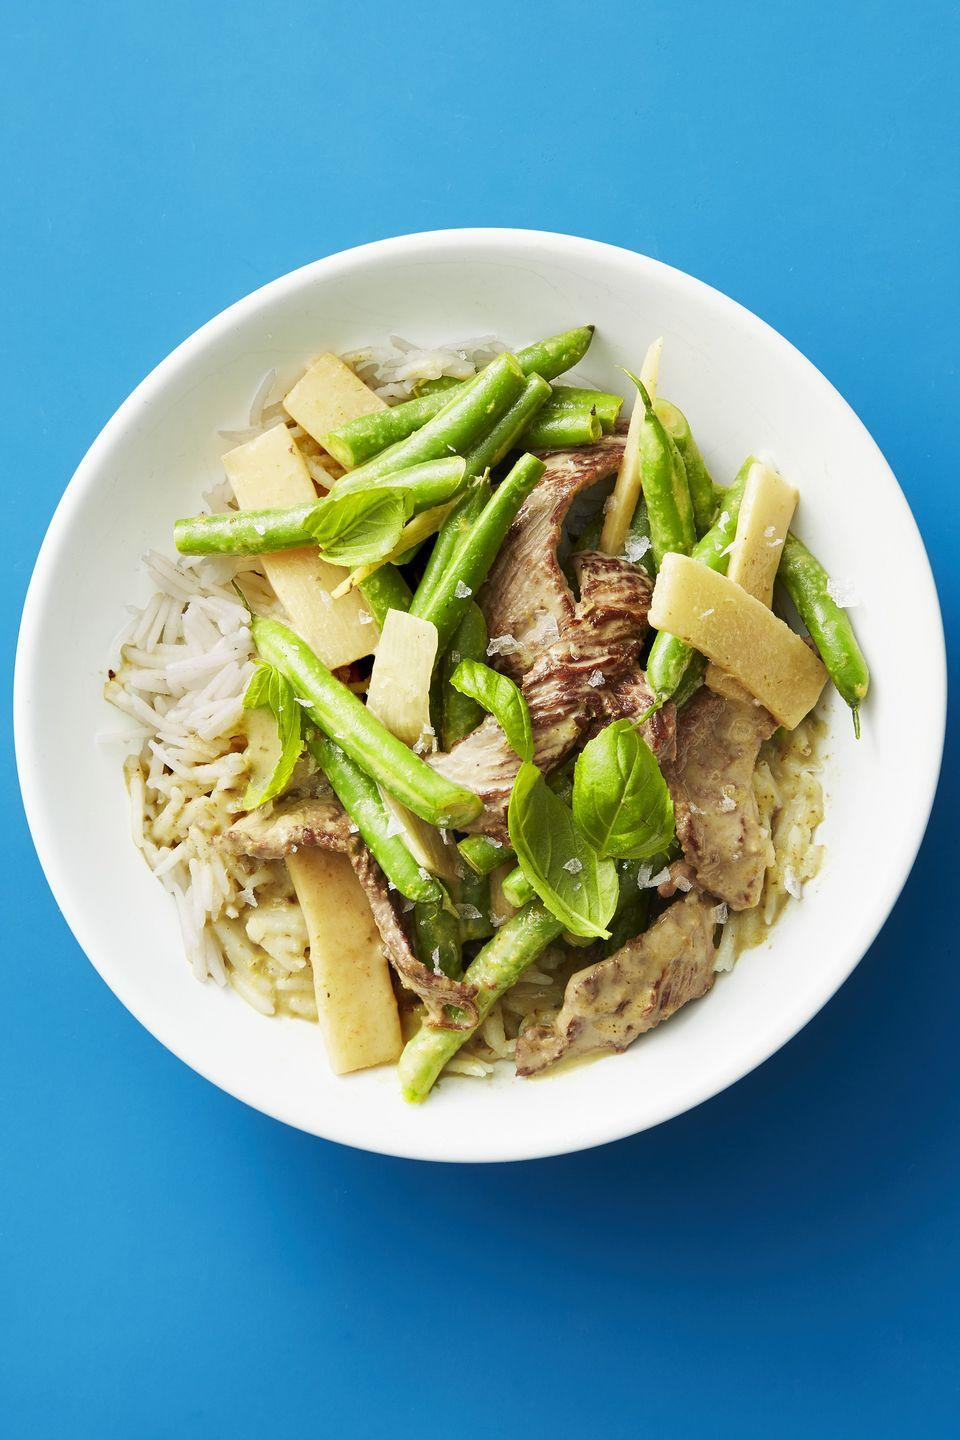 """<p>While a packet of instant rice is both fast and budget friendly, the umami blend of veggies and beef can also be served over noodles, too.</p><p><a href=""""https://www.goodhousekeeping.com/food-recipes/easy/a47888/thai-beef-and-veggie-stir-fry-recipe/"""" rel=""""nofollow noopener"""" target=""""_blank"""" data-ylk=""""slk:Get the recipe for Thai Beef and Veggie Stir-Fry »"""" class=""""link rapid-noclick-resp""""><em>Get the recipe for Thai Beef and Veggie Stir-Fry »</em></a></p>"""